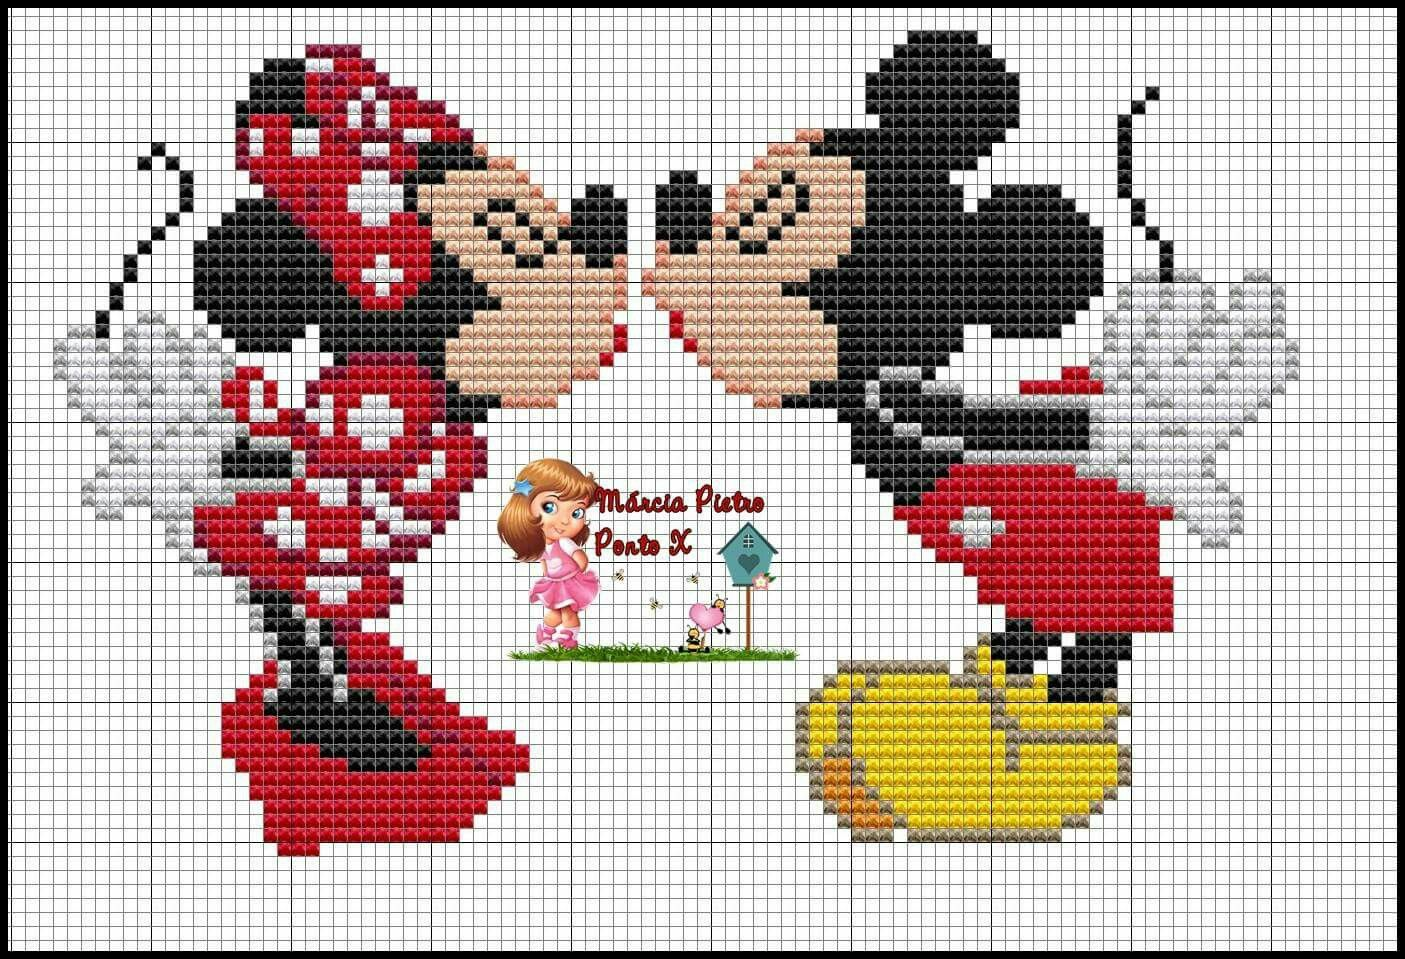 minnie and mickey mouse x stitch kreuzstich. Black Bedroom Furniture Sets. Home Design Ideas